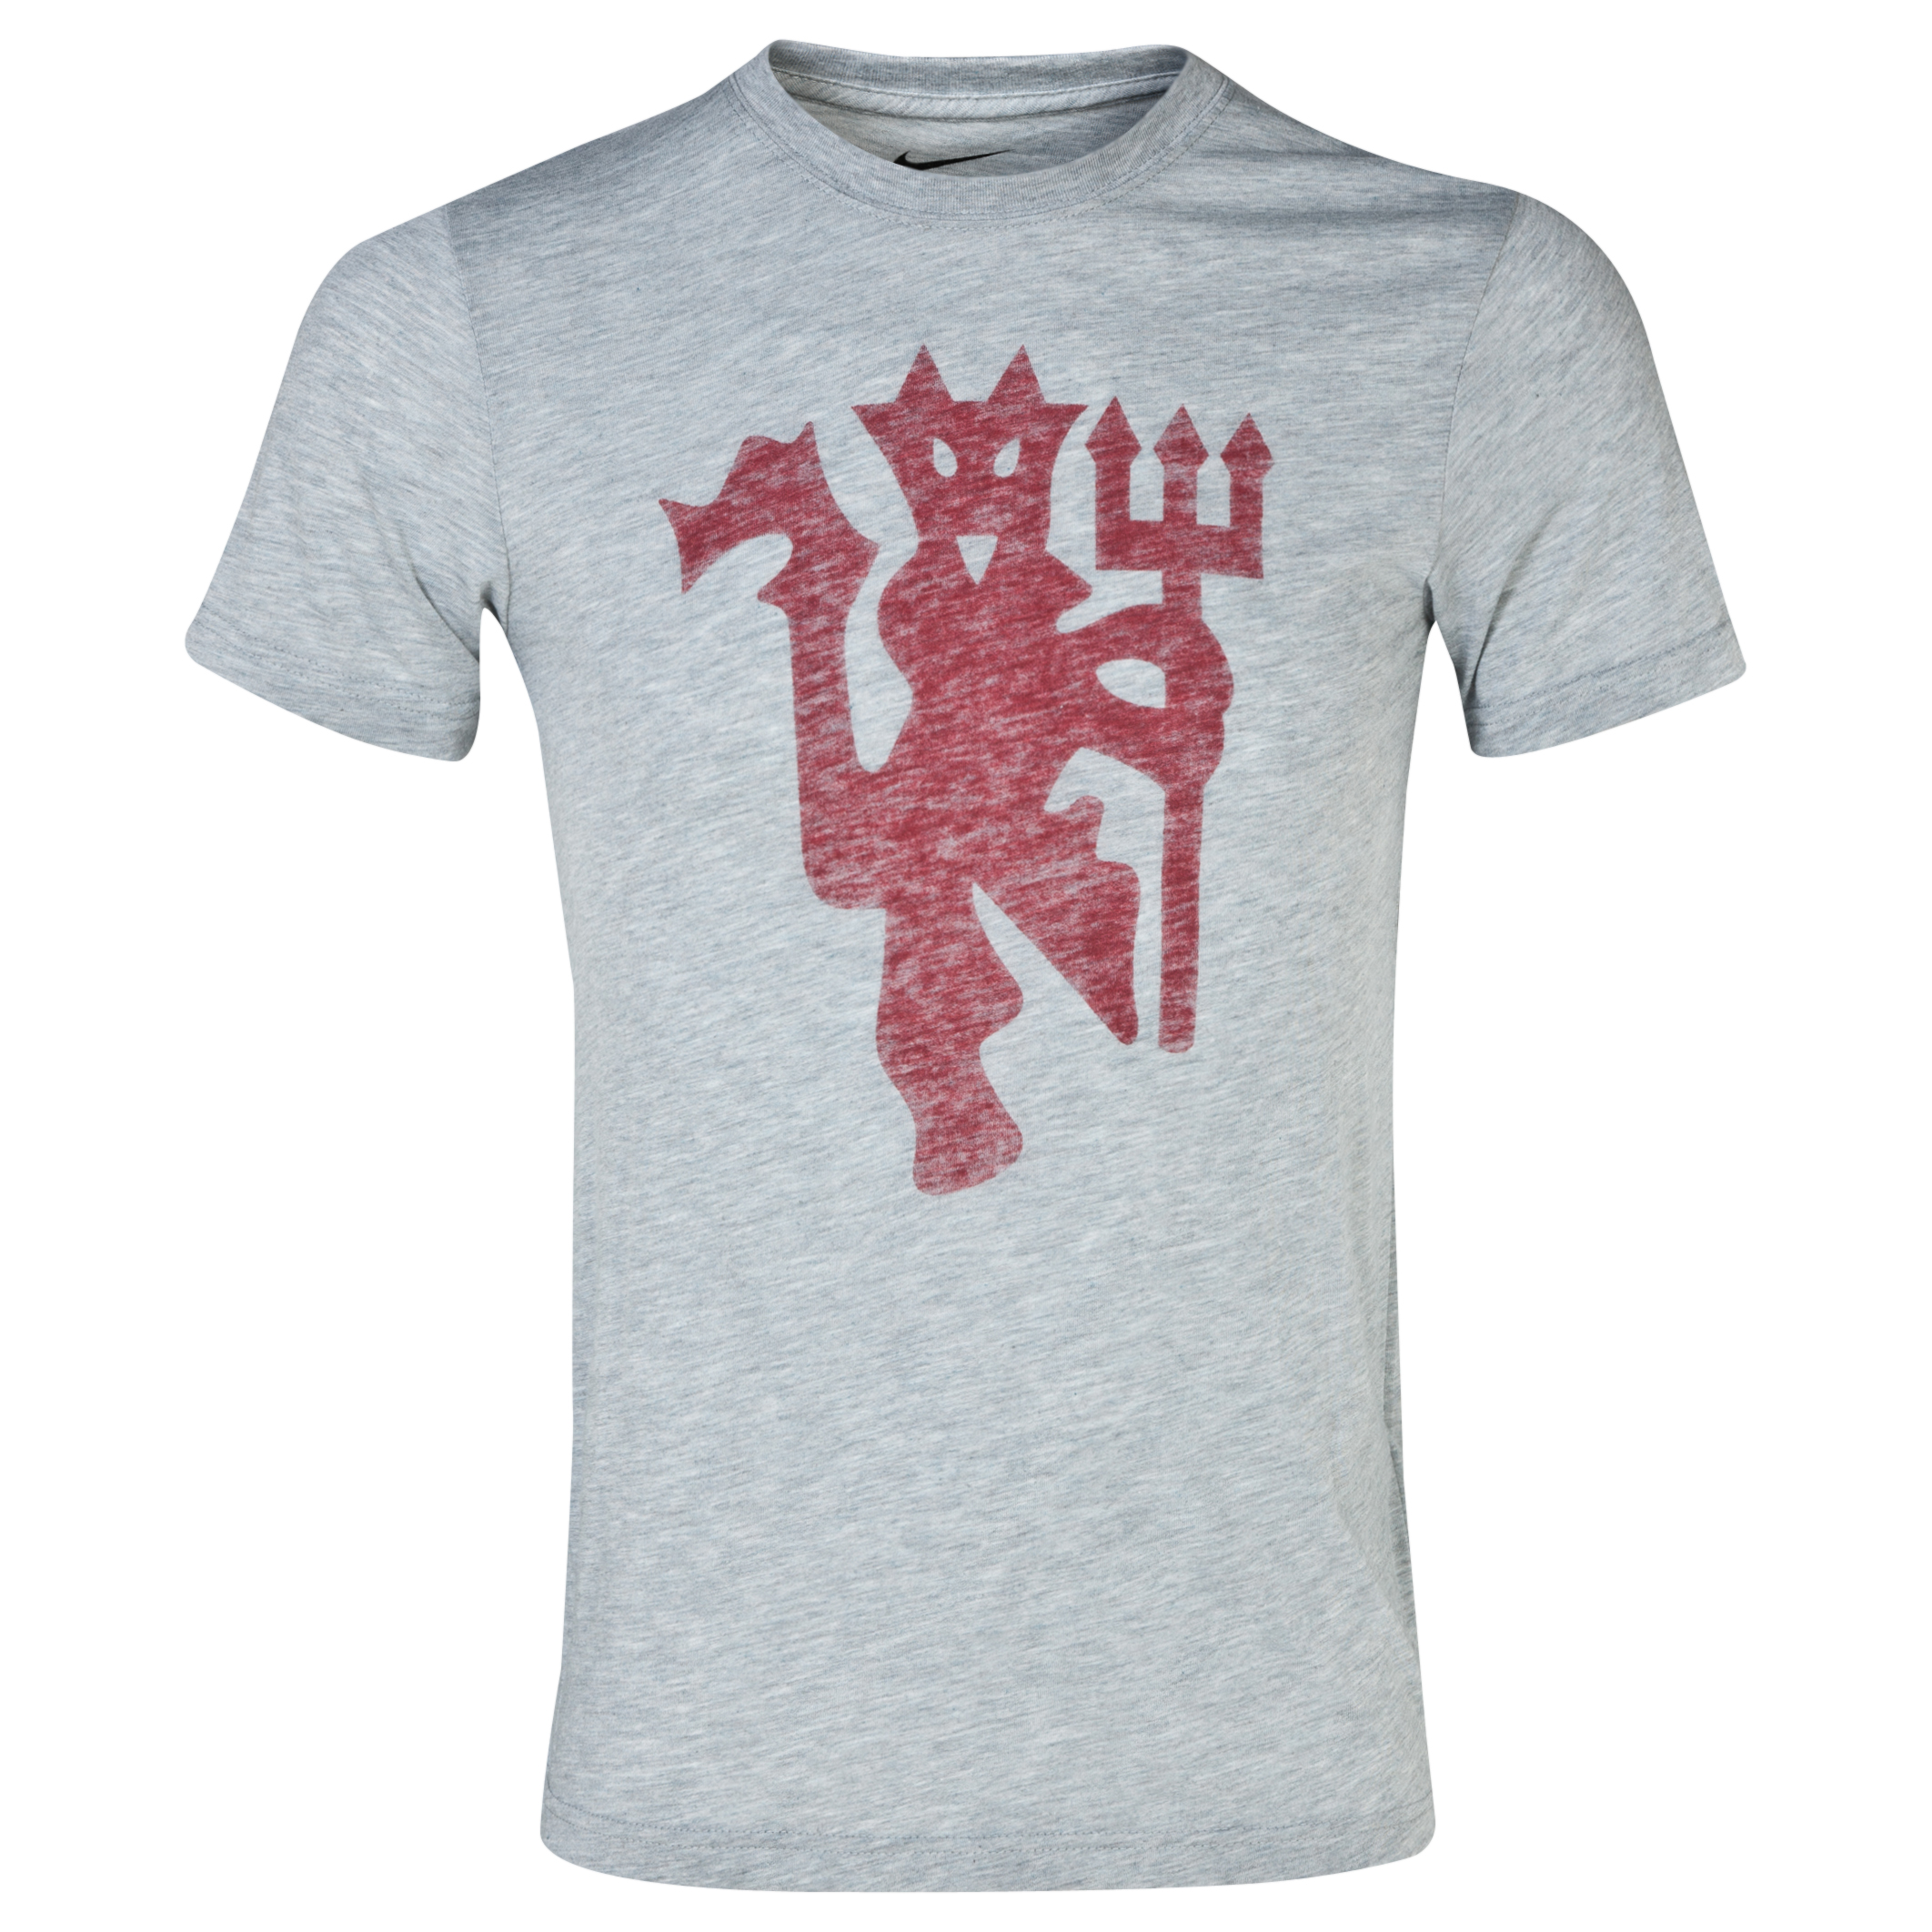 Manchester United Covert Graphic T-Shirt - Dark Grey Heather Dk Grey